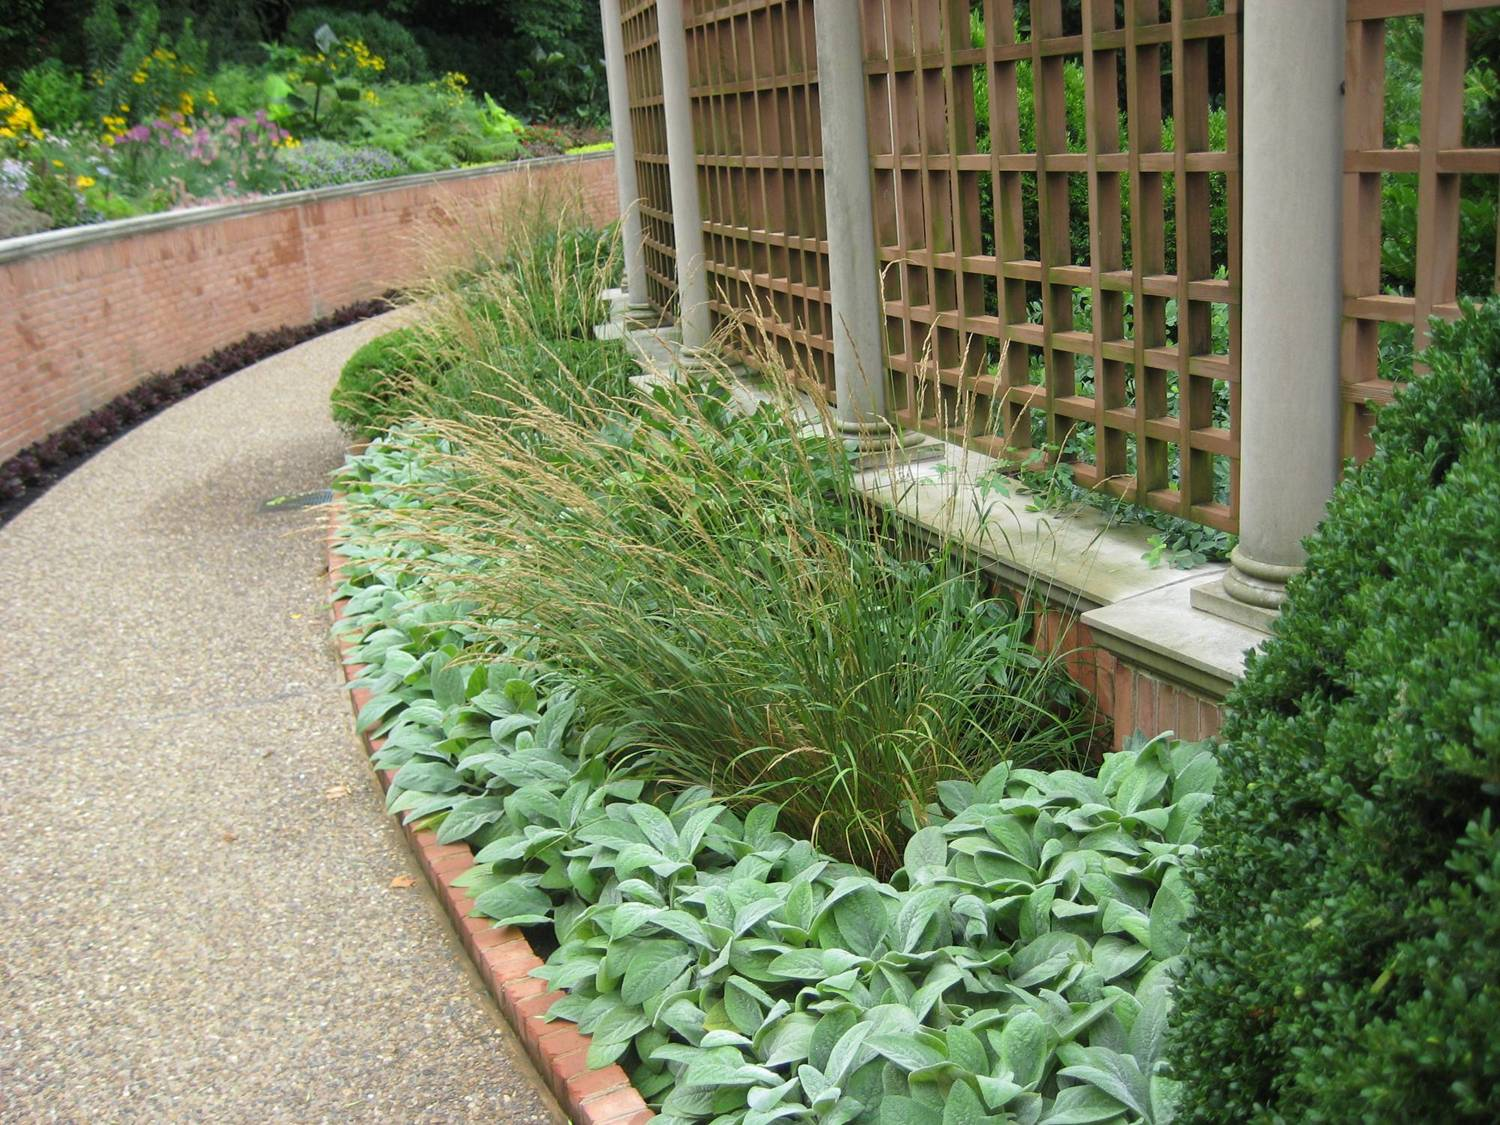 Basic Design Principles and Styles for Garden Beds